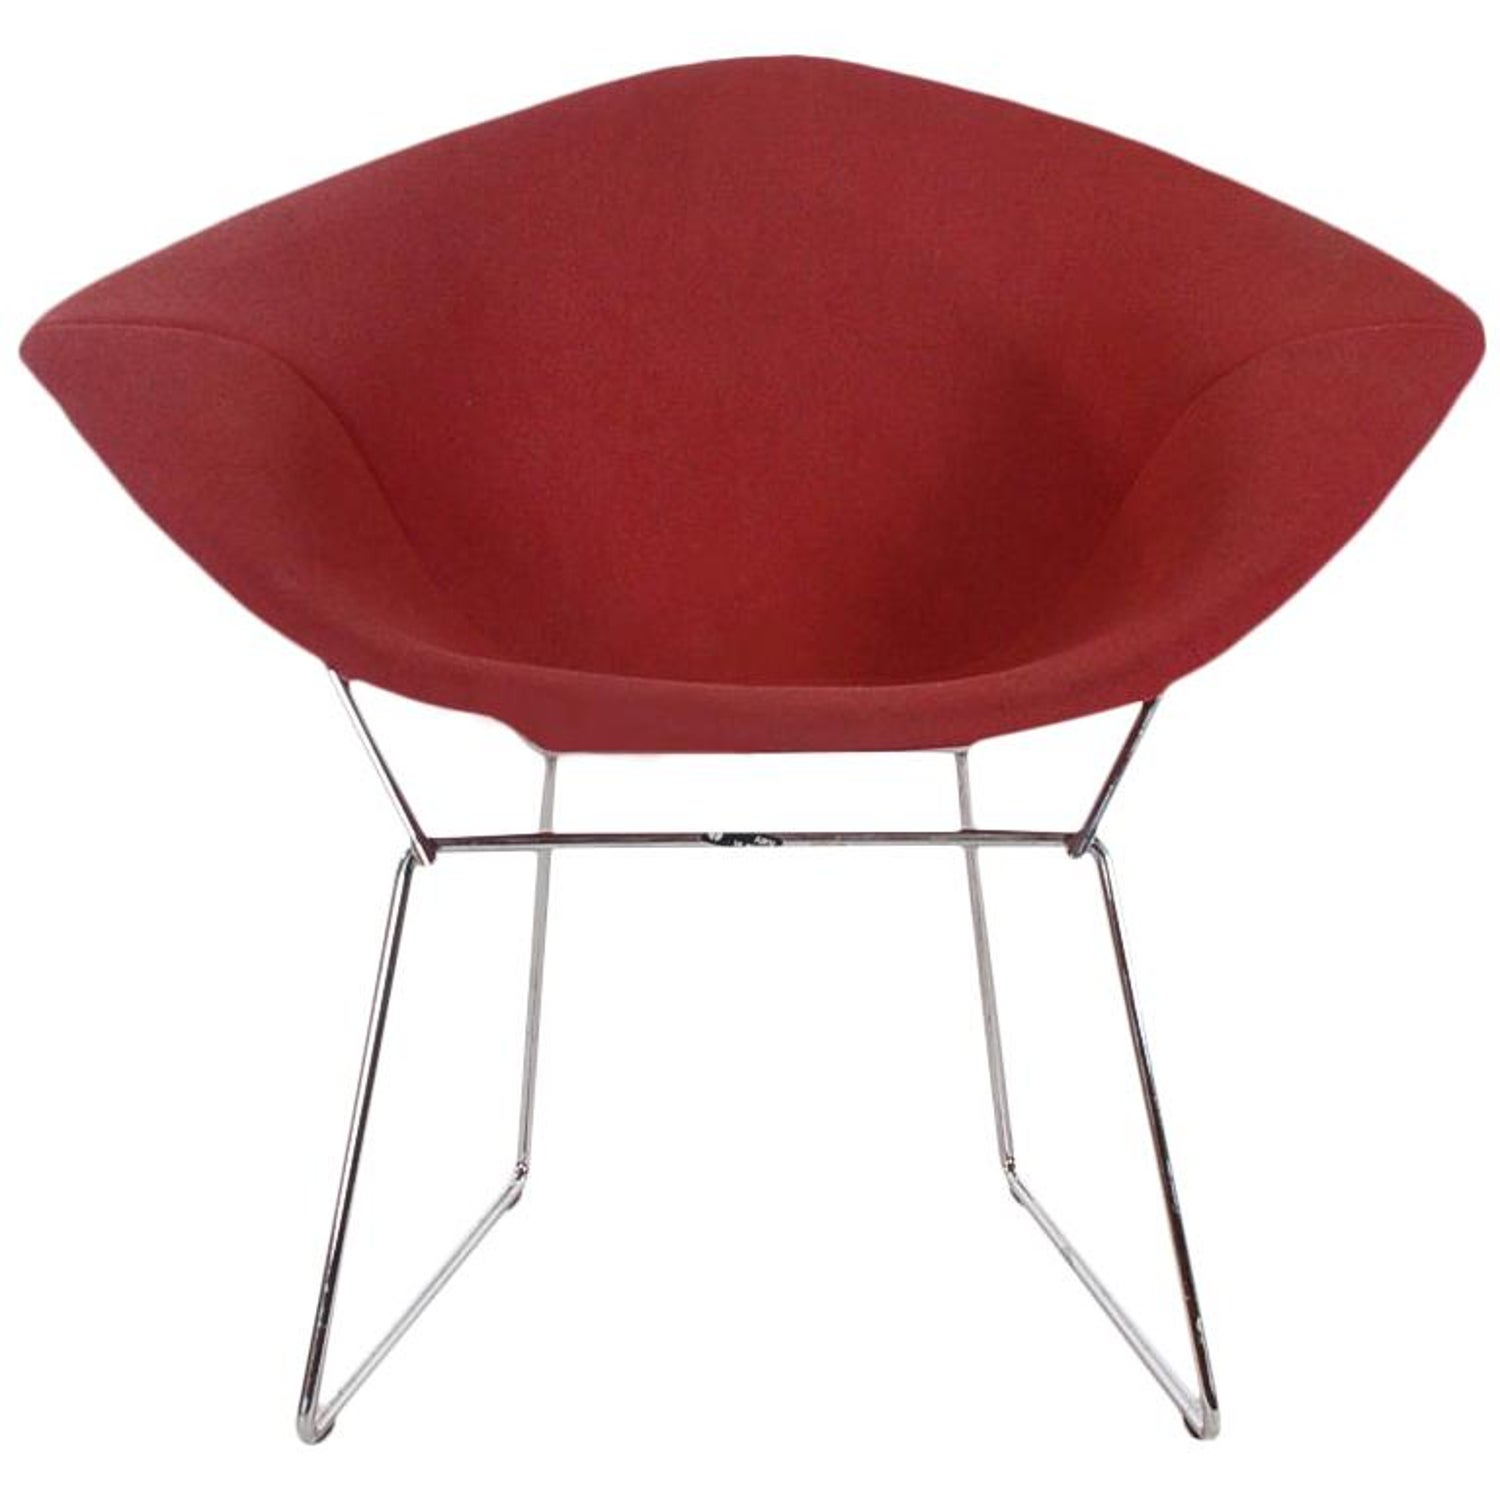 Astounding Mid Century Modern Wire Diamond Lounge Chair By Harry Bertoia For Knoll In Red Alphanode Cool Chair Designs And Ideas Alphanodeonline